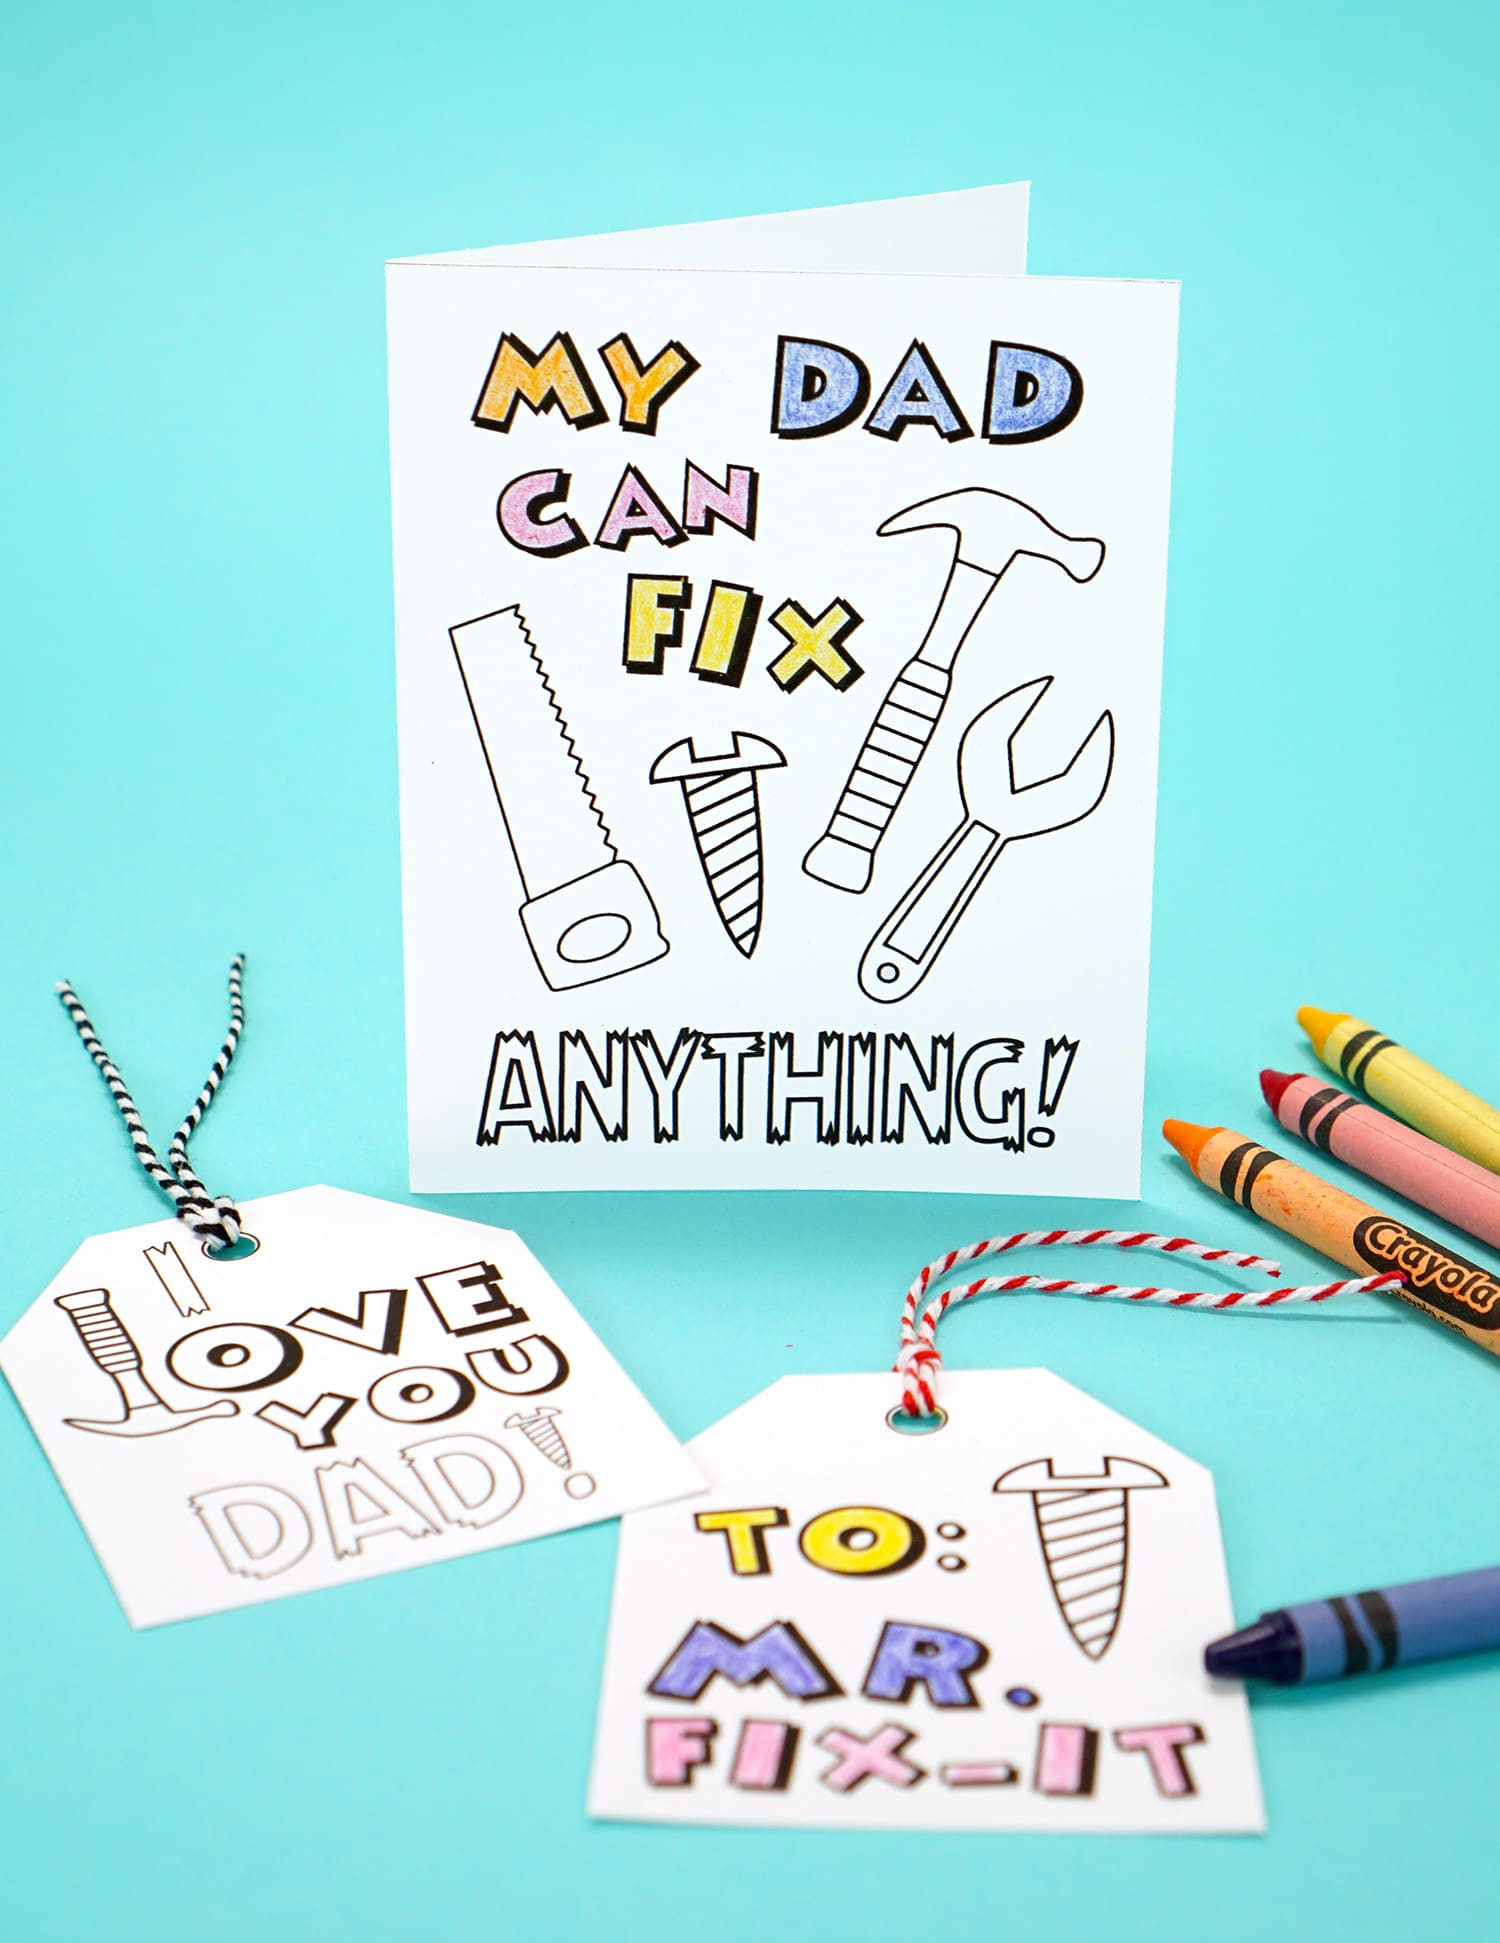 photograph relating to Printable Fathers Day Cards named Printable Fathers Working day Card + Coloring Web page - Contentment is